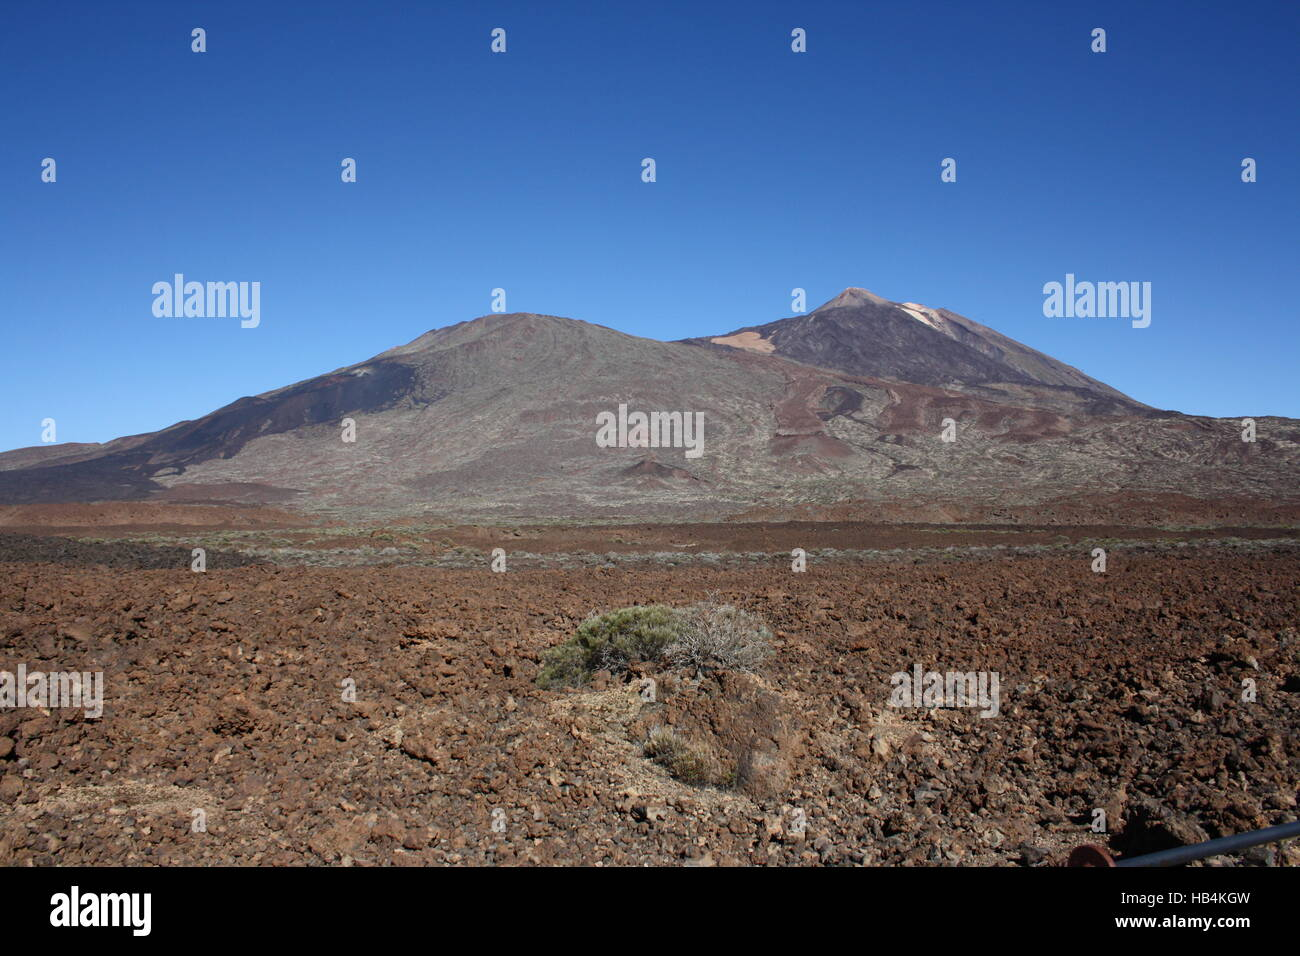 Tenerife, volcano Teide with lava field - Stock Image